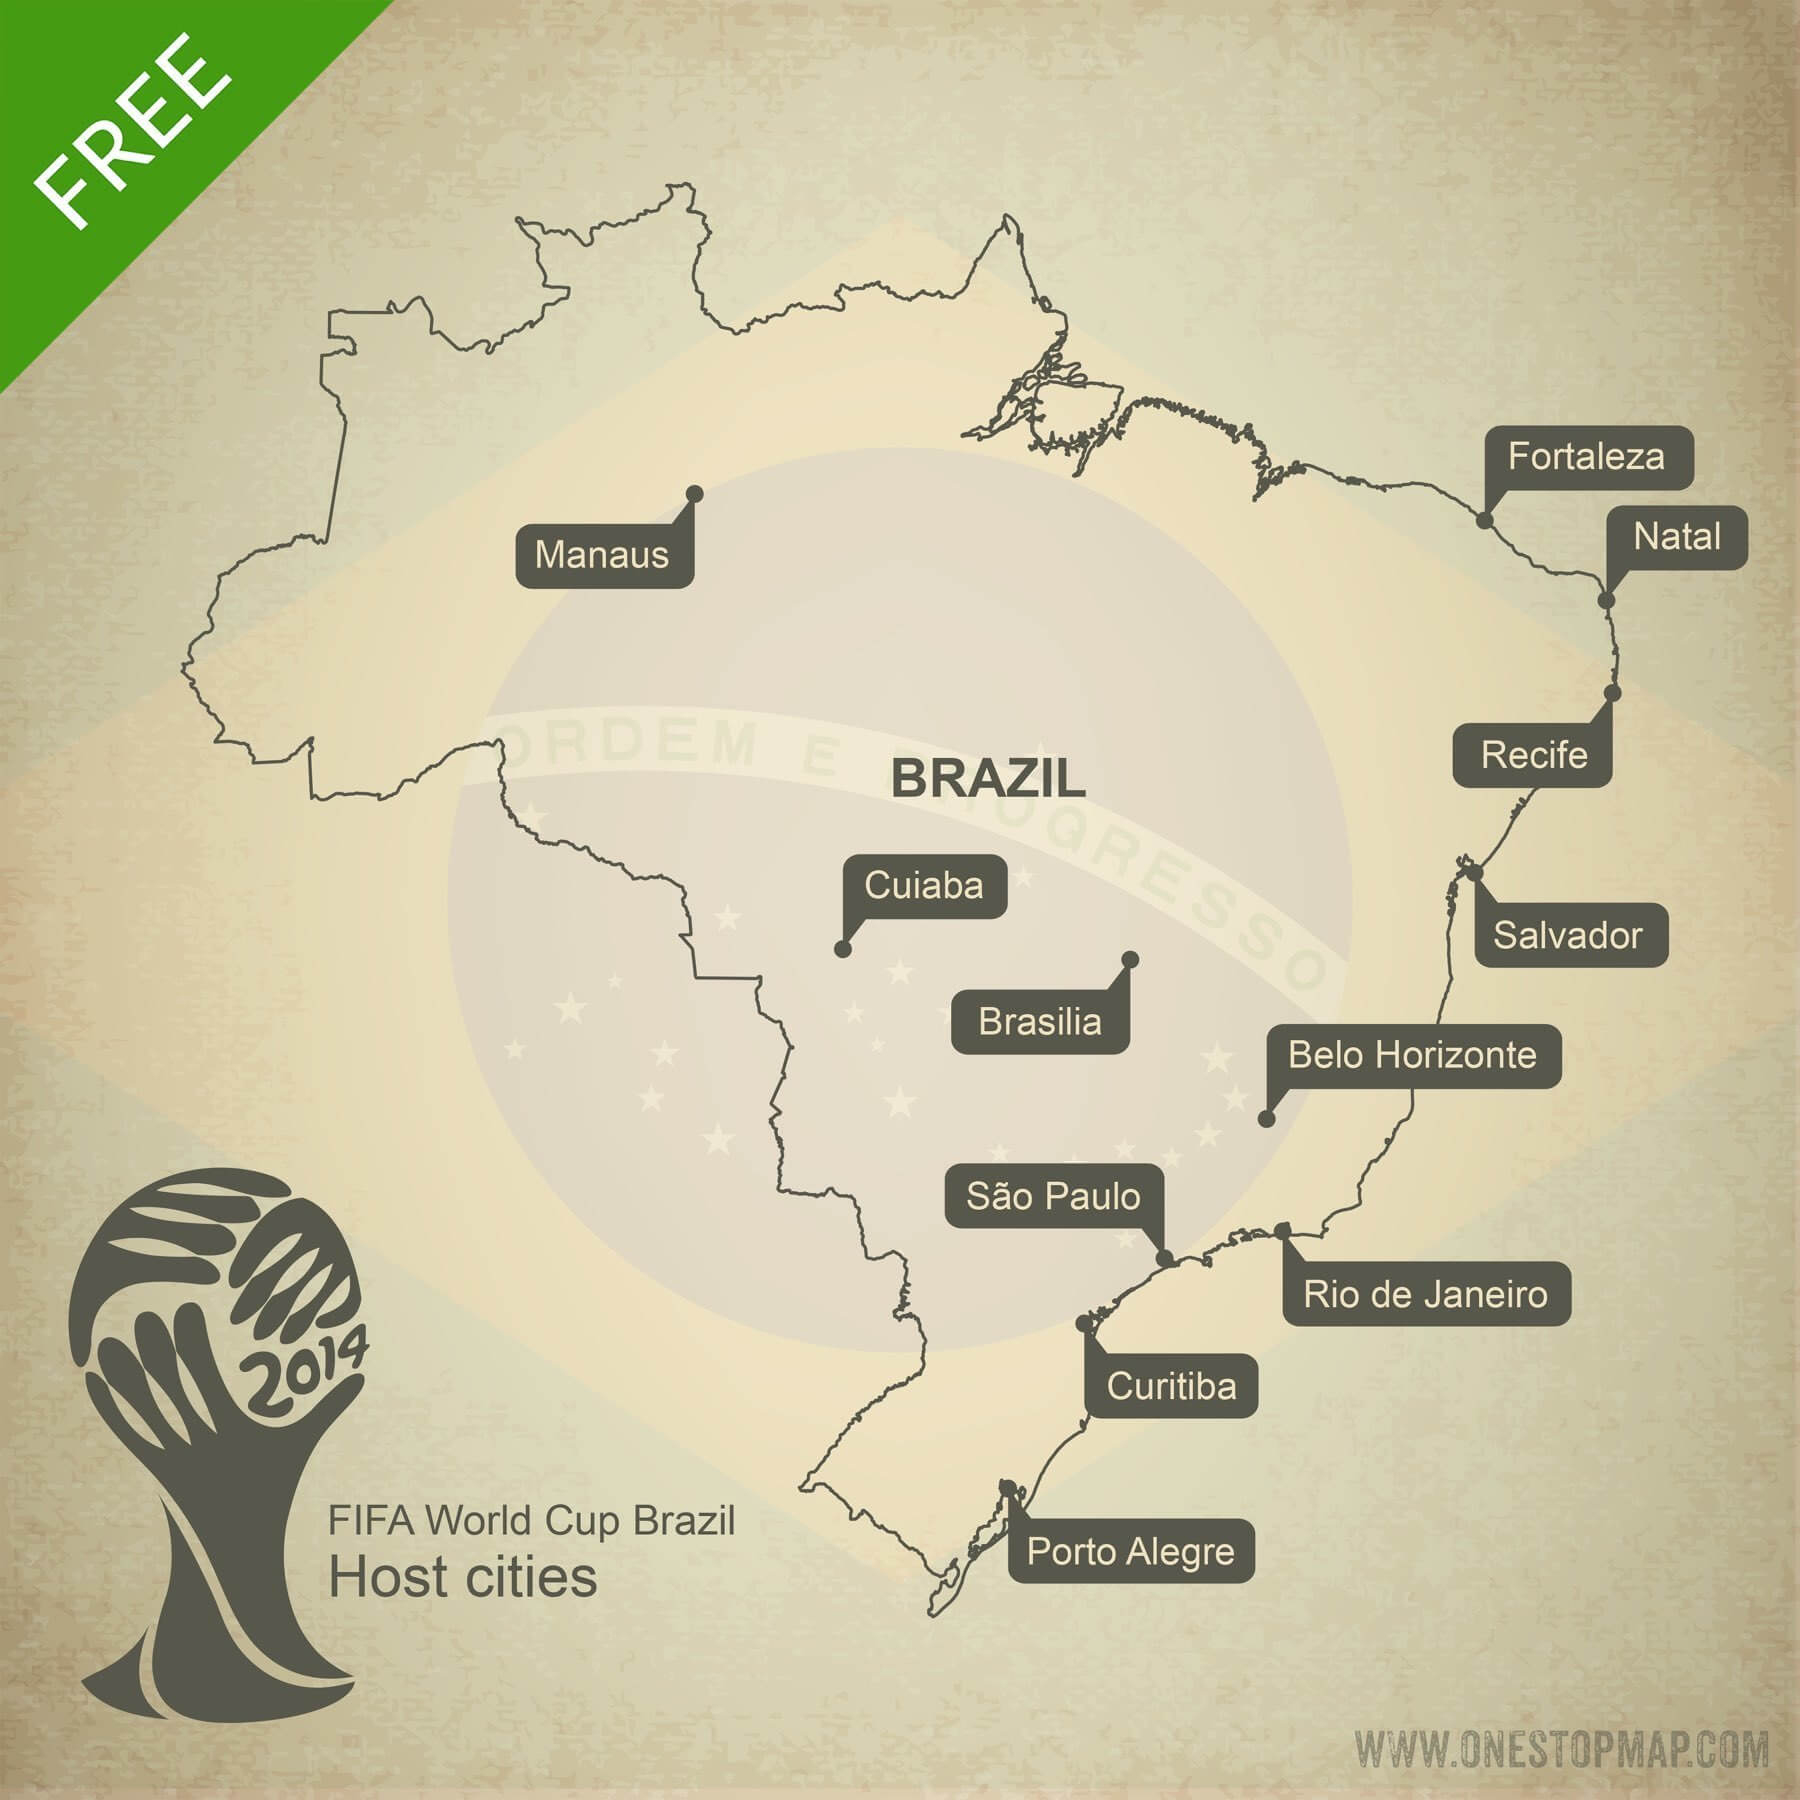 Free Vector Map Of Brazil World Cup 2014 | One Stop Map - Free Printable Map Of Brazil